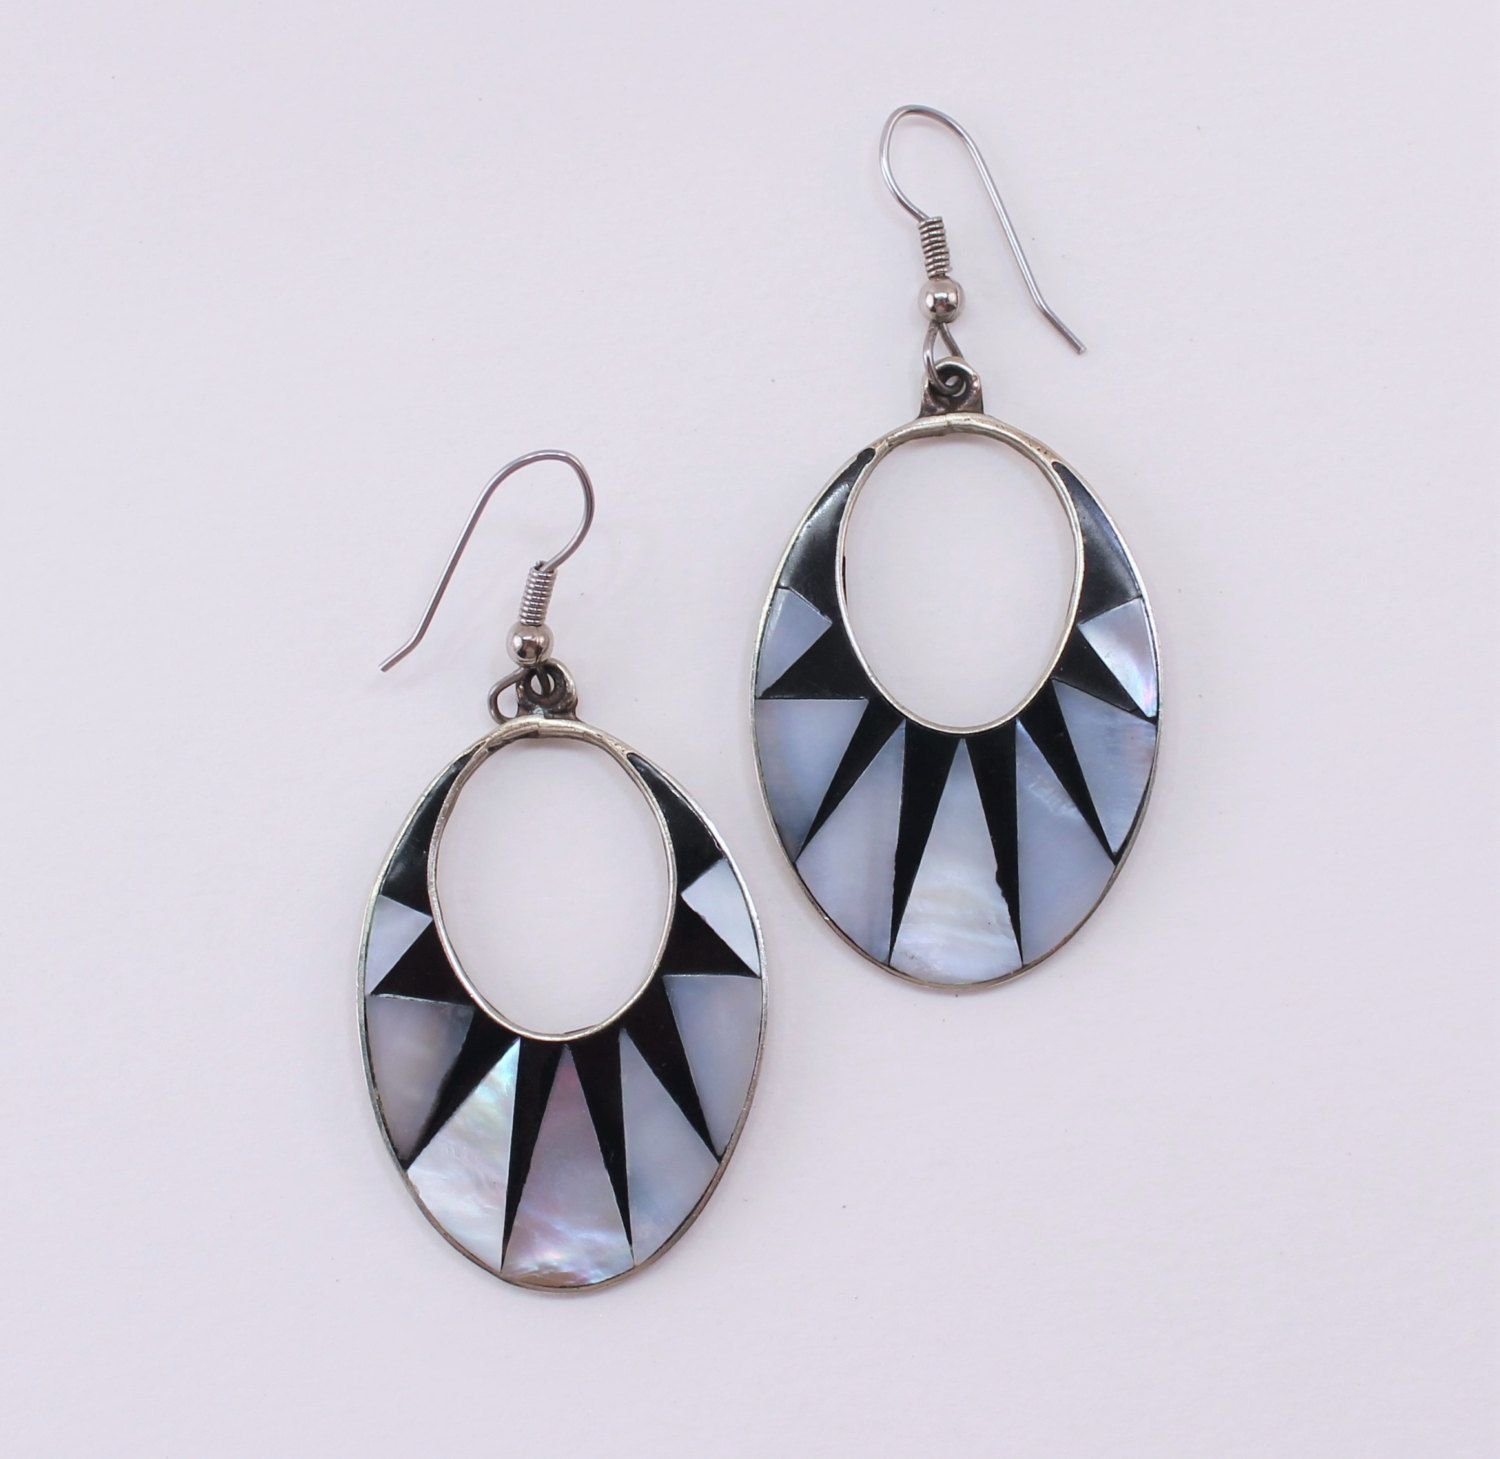 Vintage Signed Alpaca Mexico Silver Tone Mother Of Pearl Mop Abalone Shell  Inlaid Triangle Ivory Black Geometric Pieced Dangle Earrings